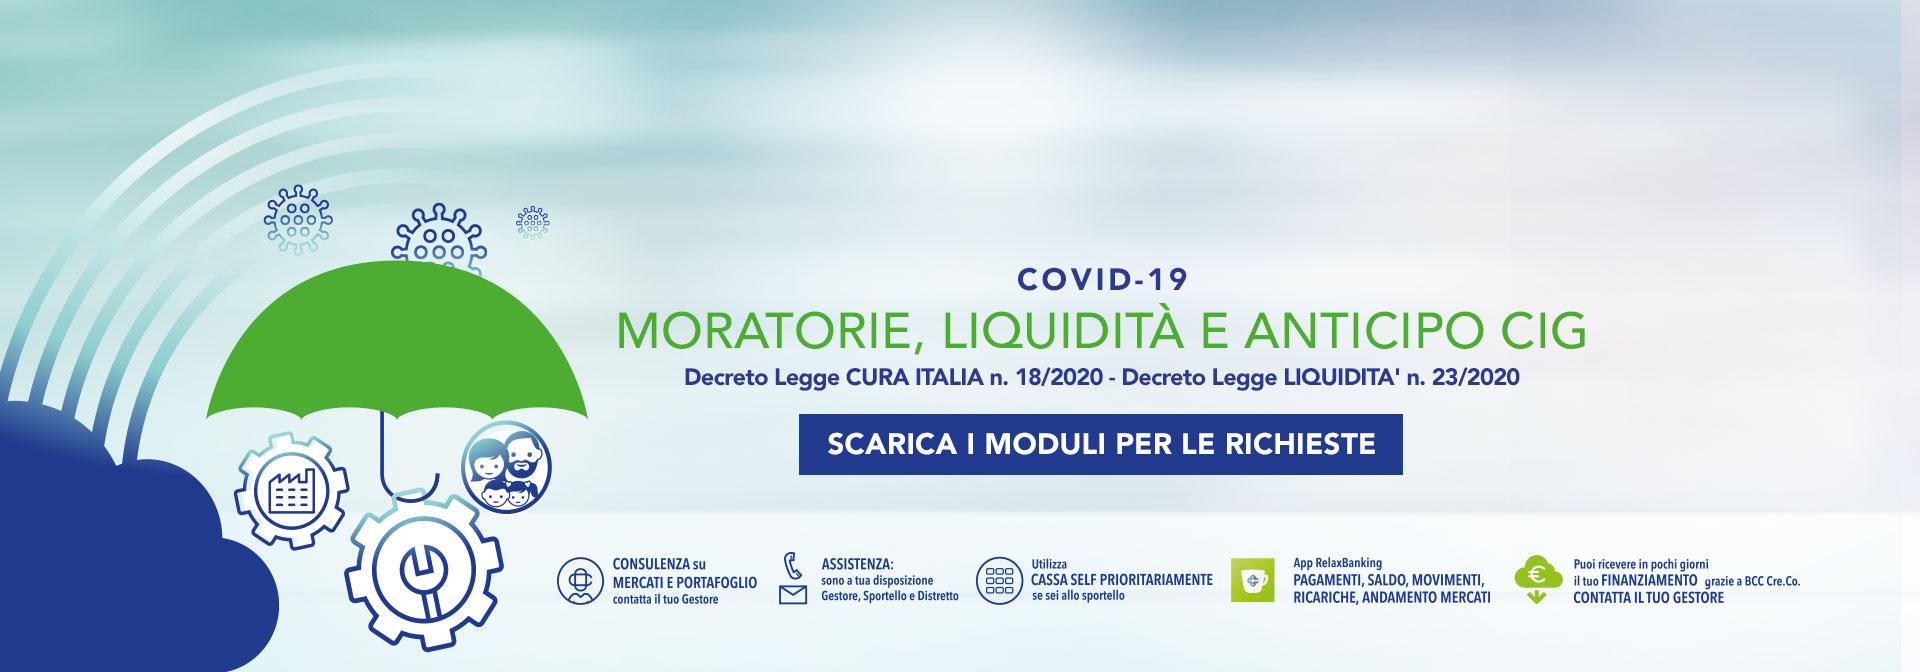 Covid-19 pop up moratorie liquidita cig 4